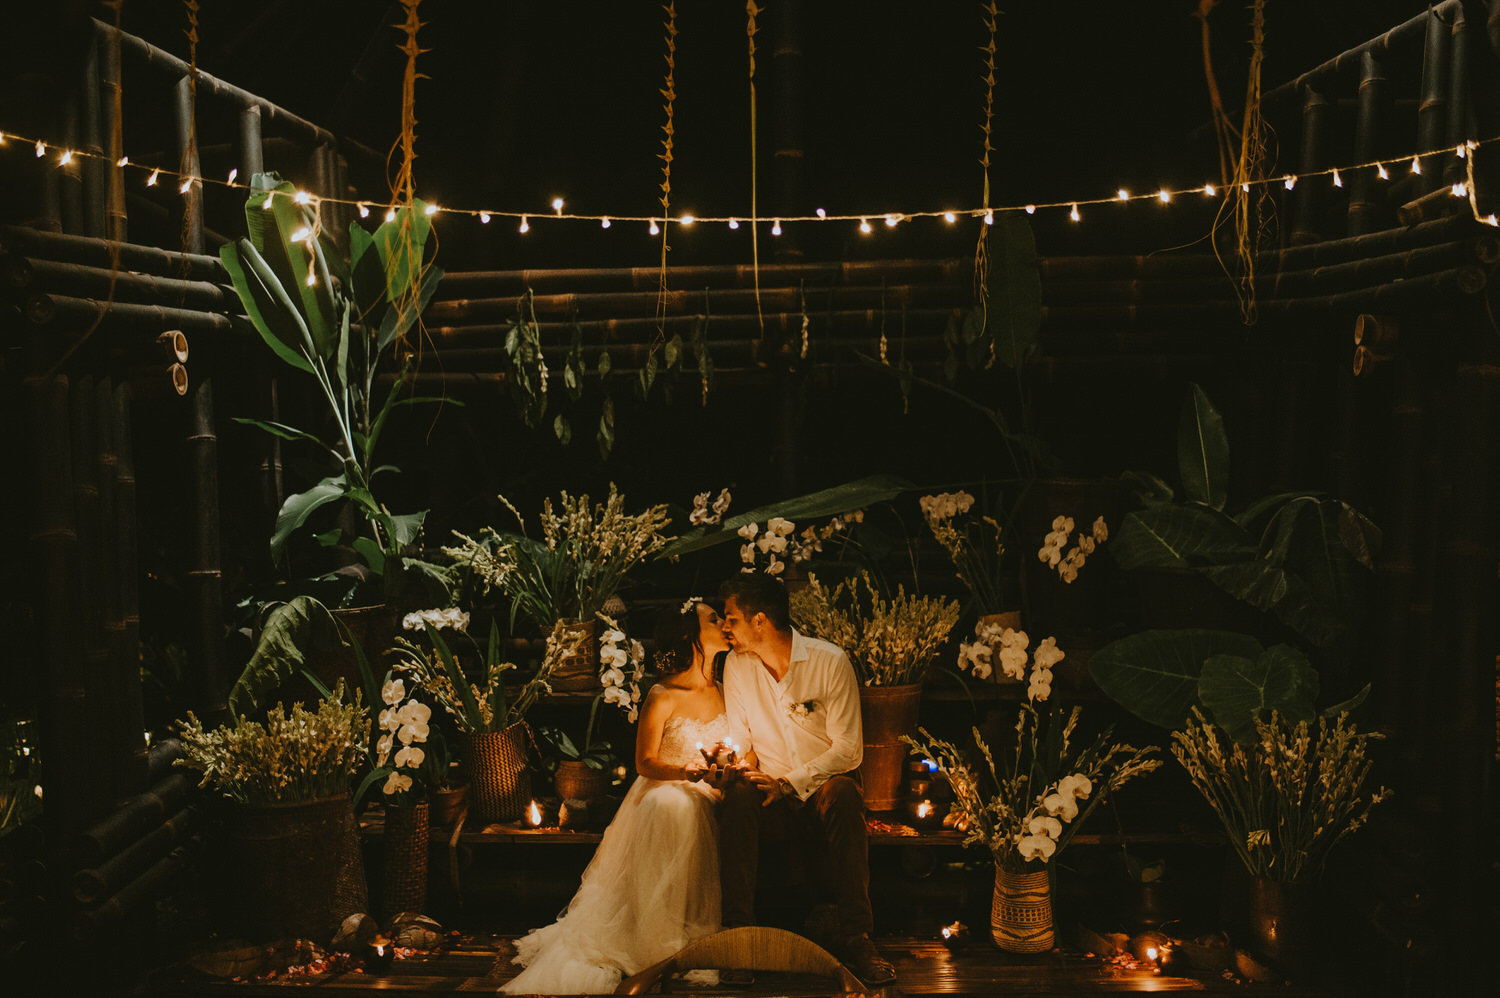 bali-wedding-ubud-wedding-wedding-destination-diktatphotography-kadek-artayasa-elaine-and-glenn-177